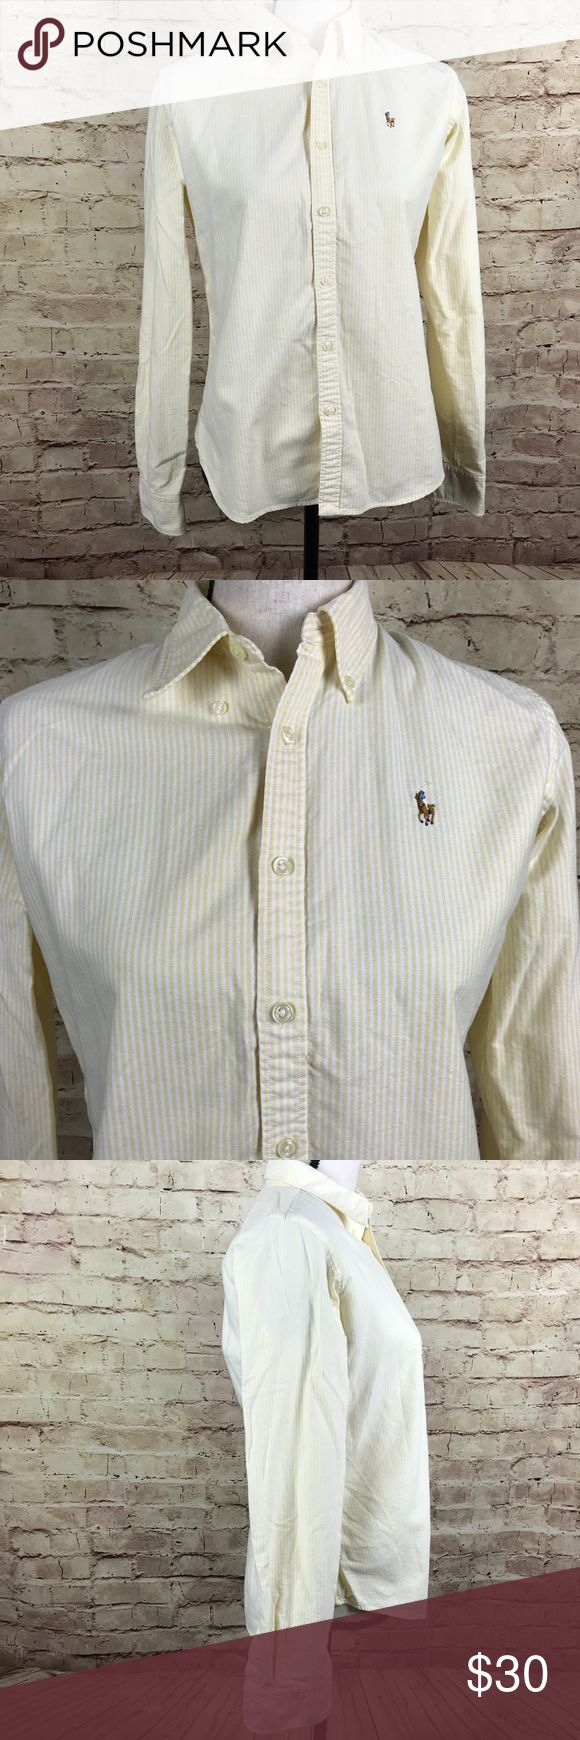 Ralph Lauren Slim Fit Oxford Shirt Size 8 Ralph Lauren Women Oxford Shirt  Slim Fit  Embroidered Brown Pony Yellow, White Stripe  Long Sleeve Top  Size 8 Approximate measurements: chest 18.5 inches; sleeve 24.5 inches; length 25.5 inches Ralph Lauren Tops Button Down Shirts